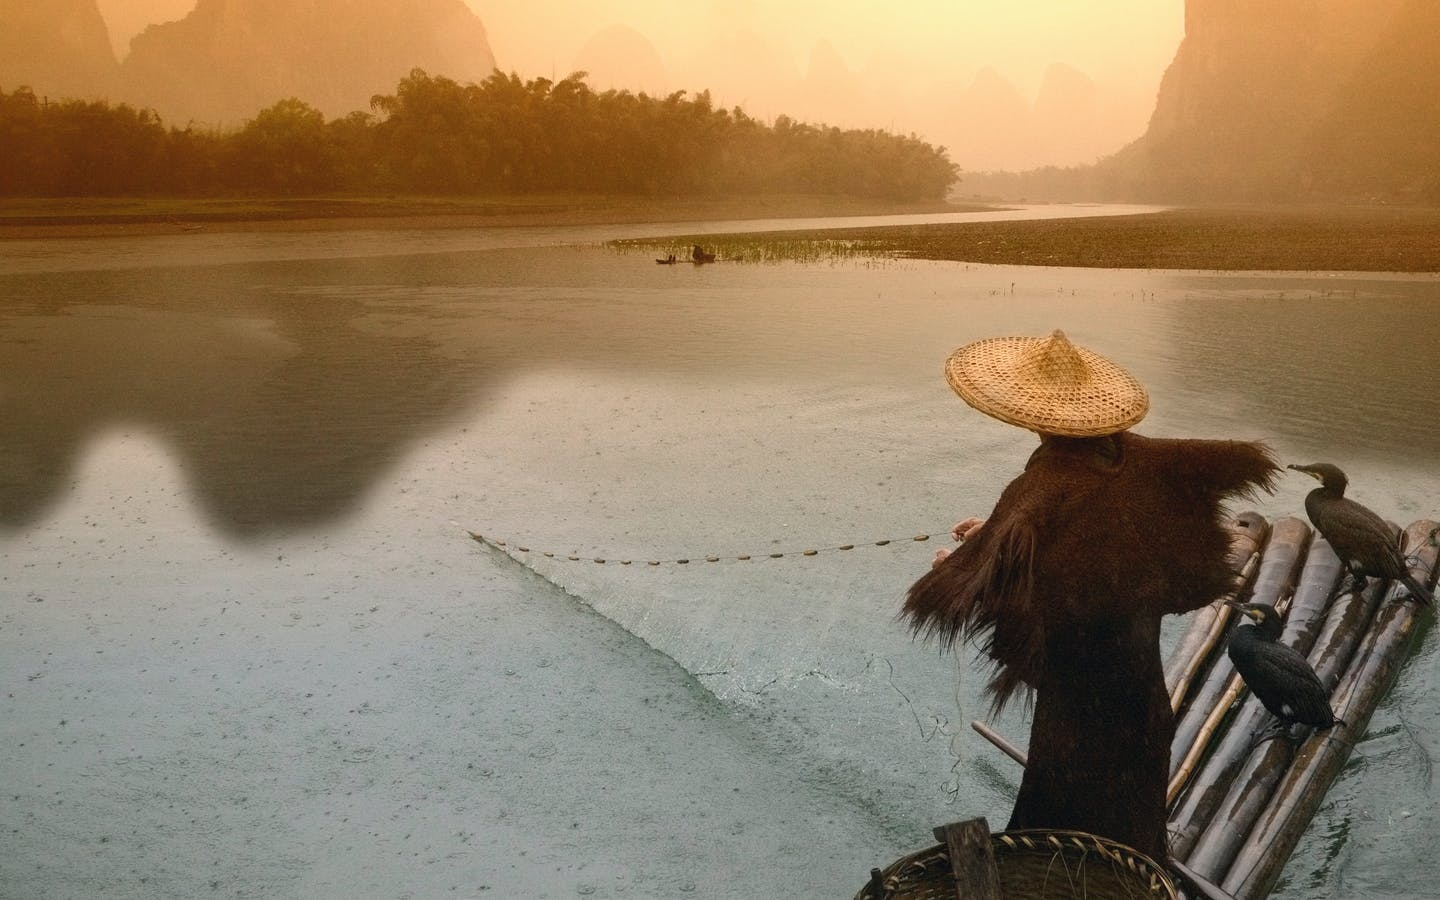 Fisherman casting net from bamboo raft at dawn